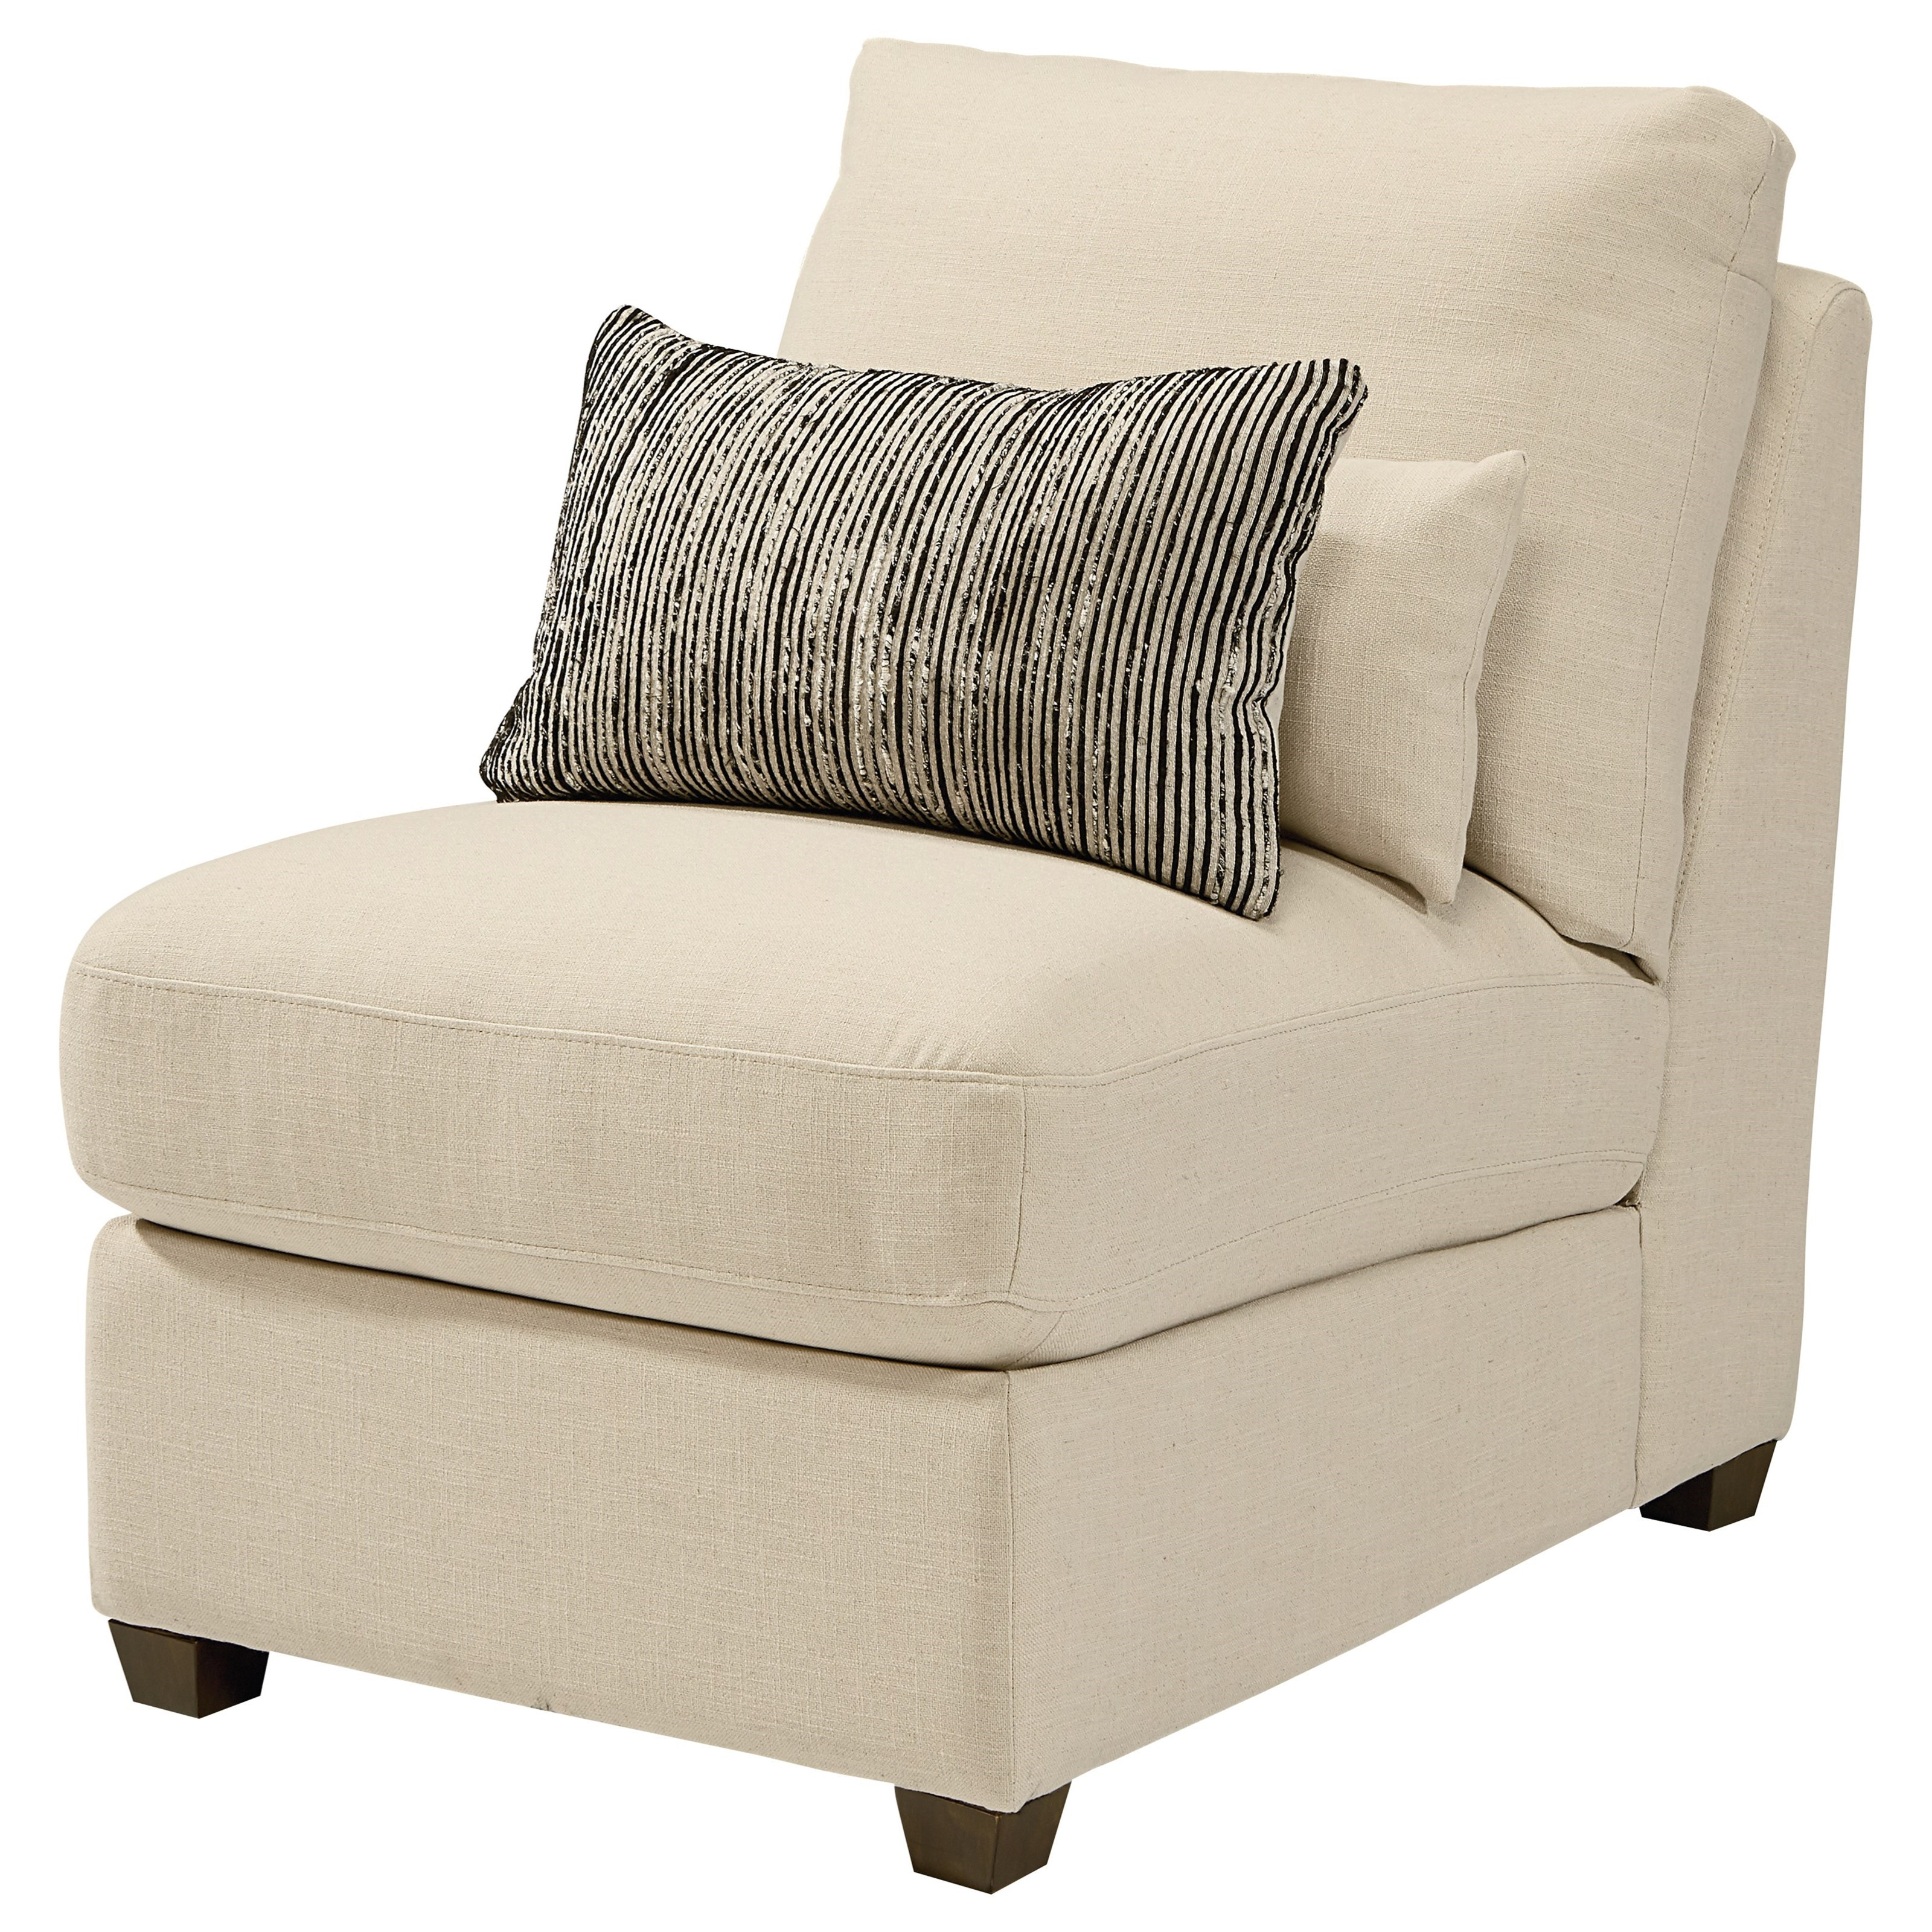 Magnolia Homejoanna Gaines Homestead Armless Chair With In Favorite Magnolia Home Homestead 4 Piece Sectionals By Joanna Gaines (View 18 of 20)